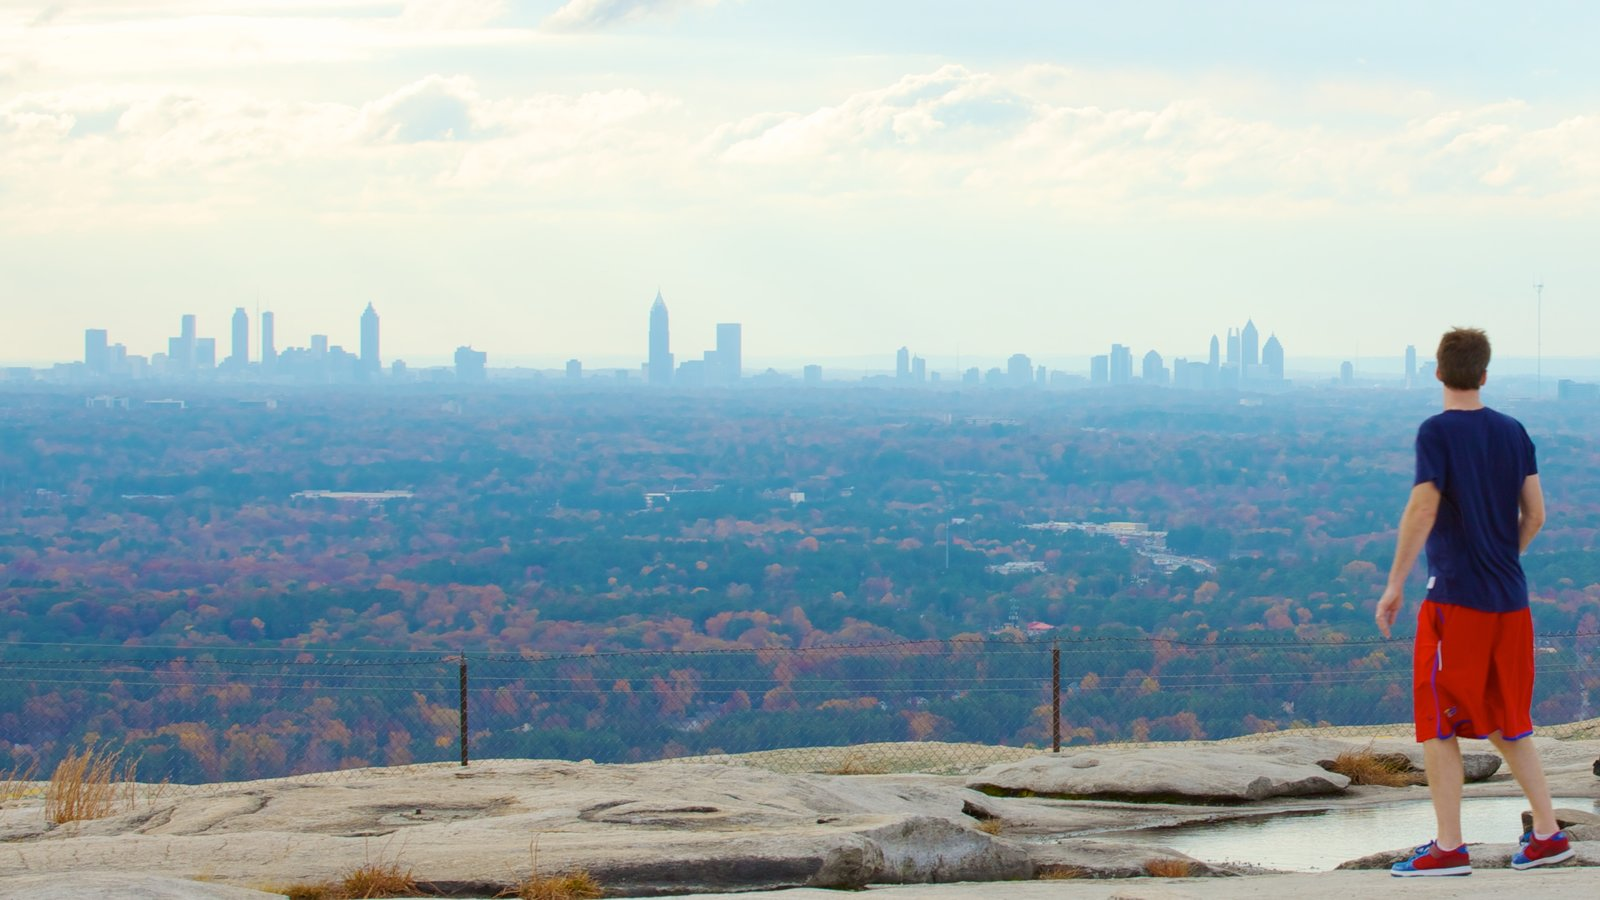 Stone Mountain Park Pictures View Photos  Images of